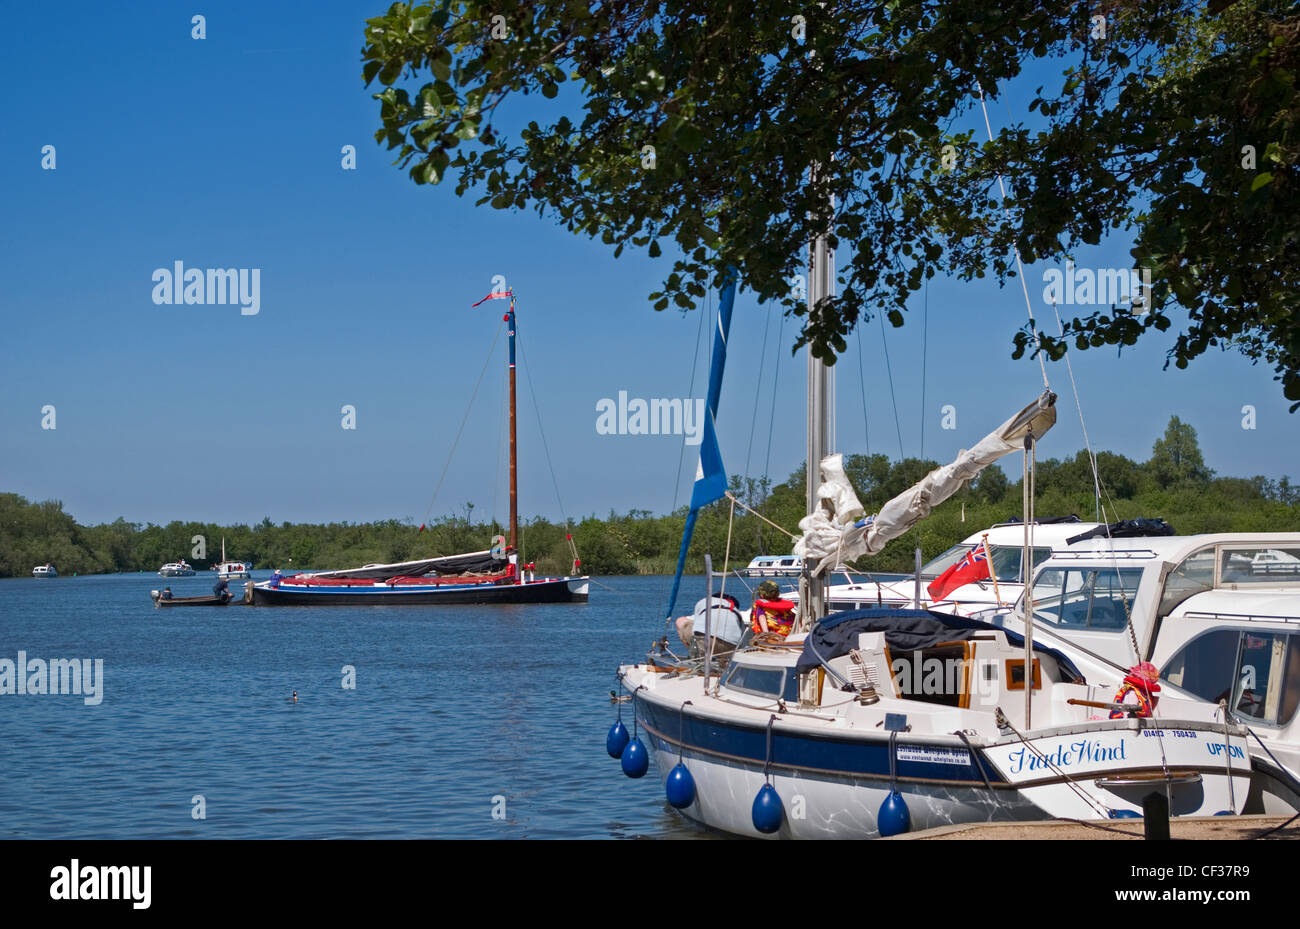 Boats moored at Ranworth Staithe fronting Malthouse Broad in the Norfolk Broads. - Stock Image